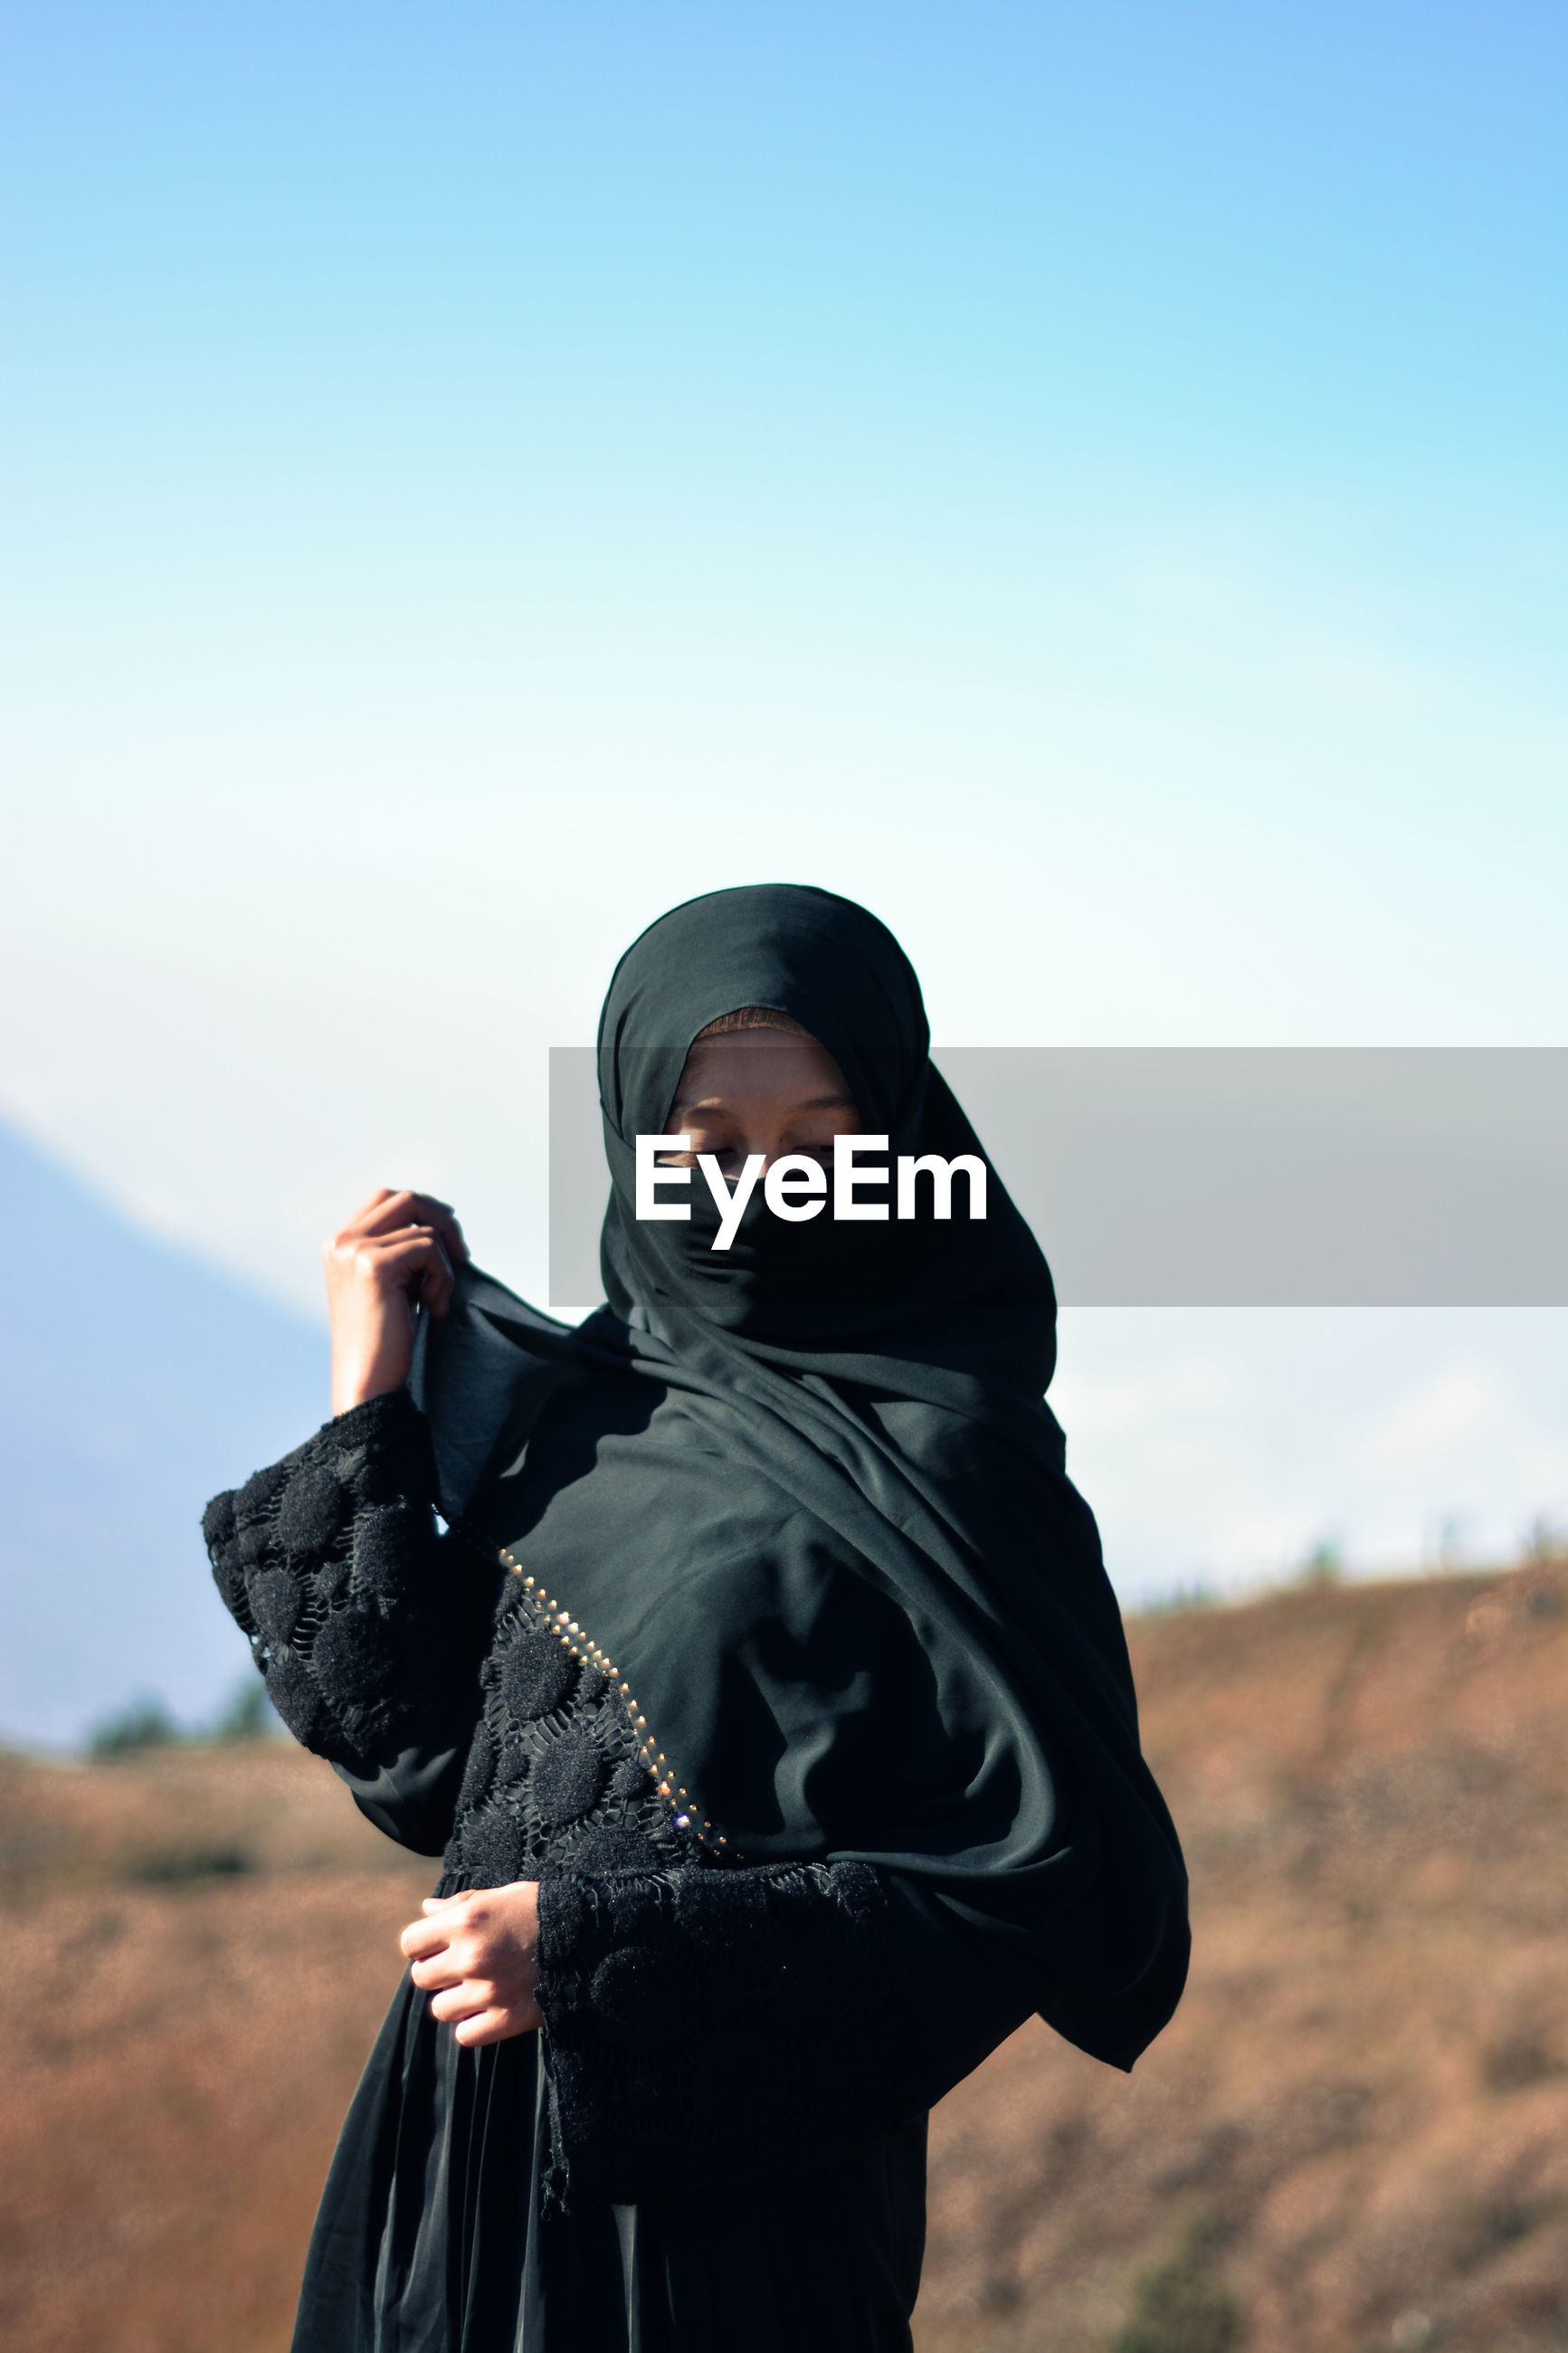 Young woman wearing burka while standing on field against sky